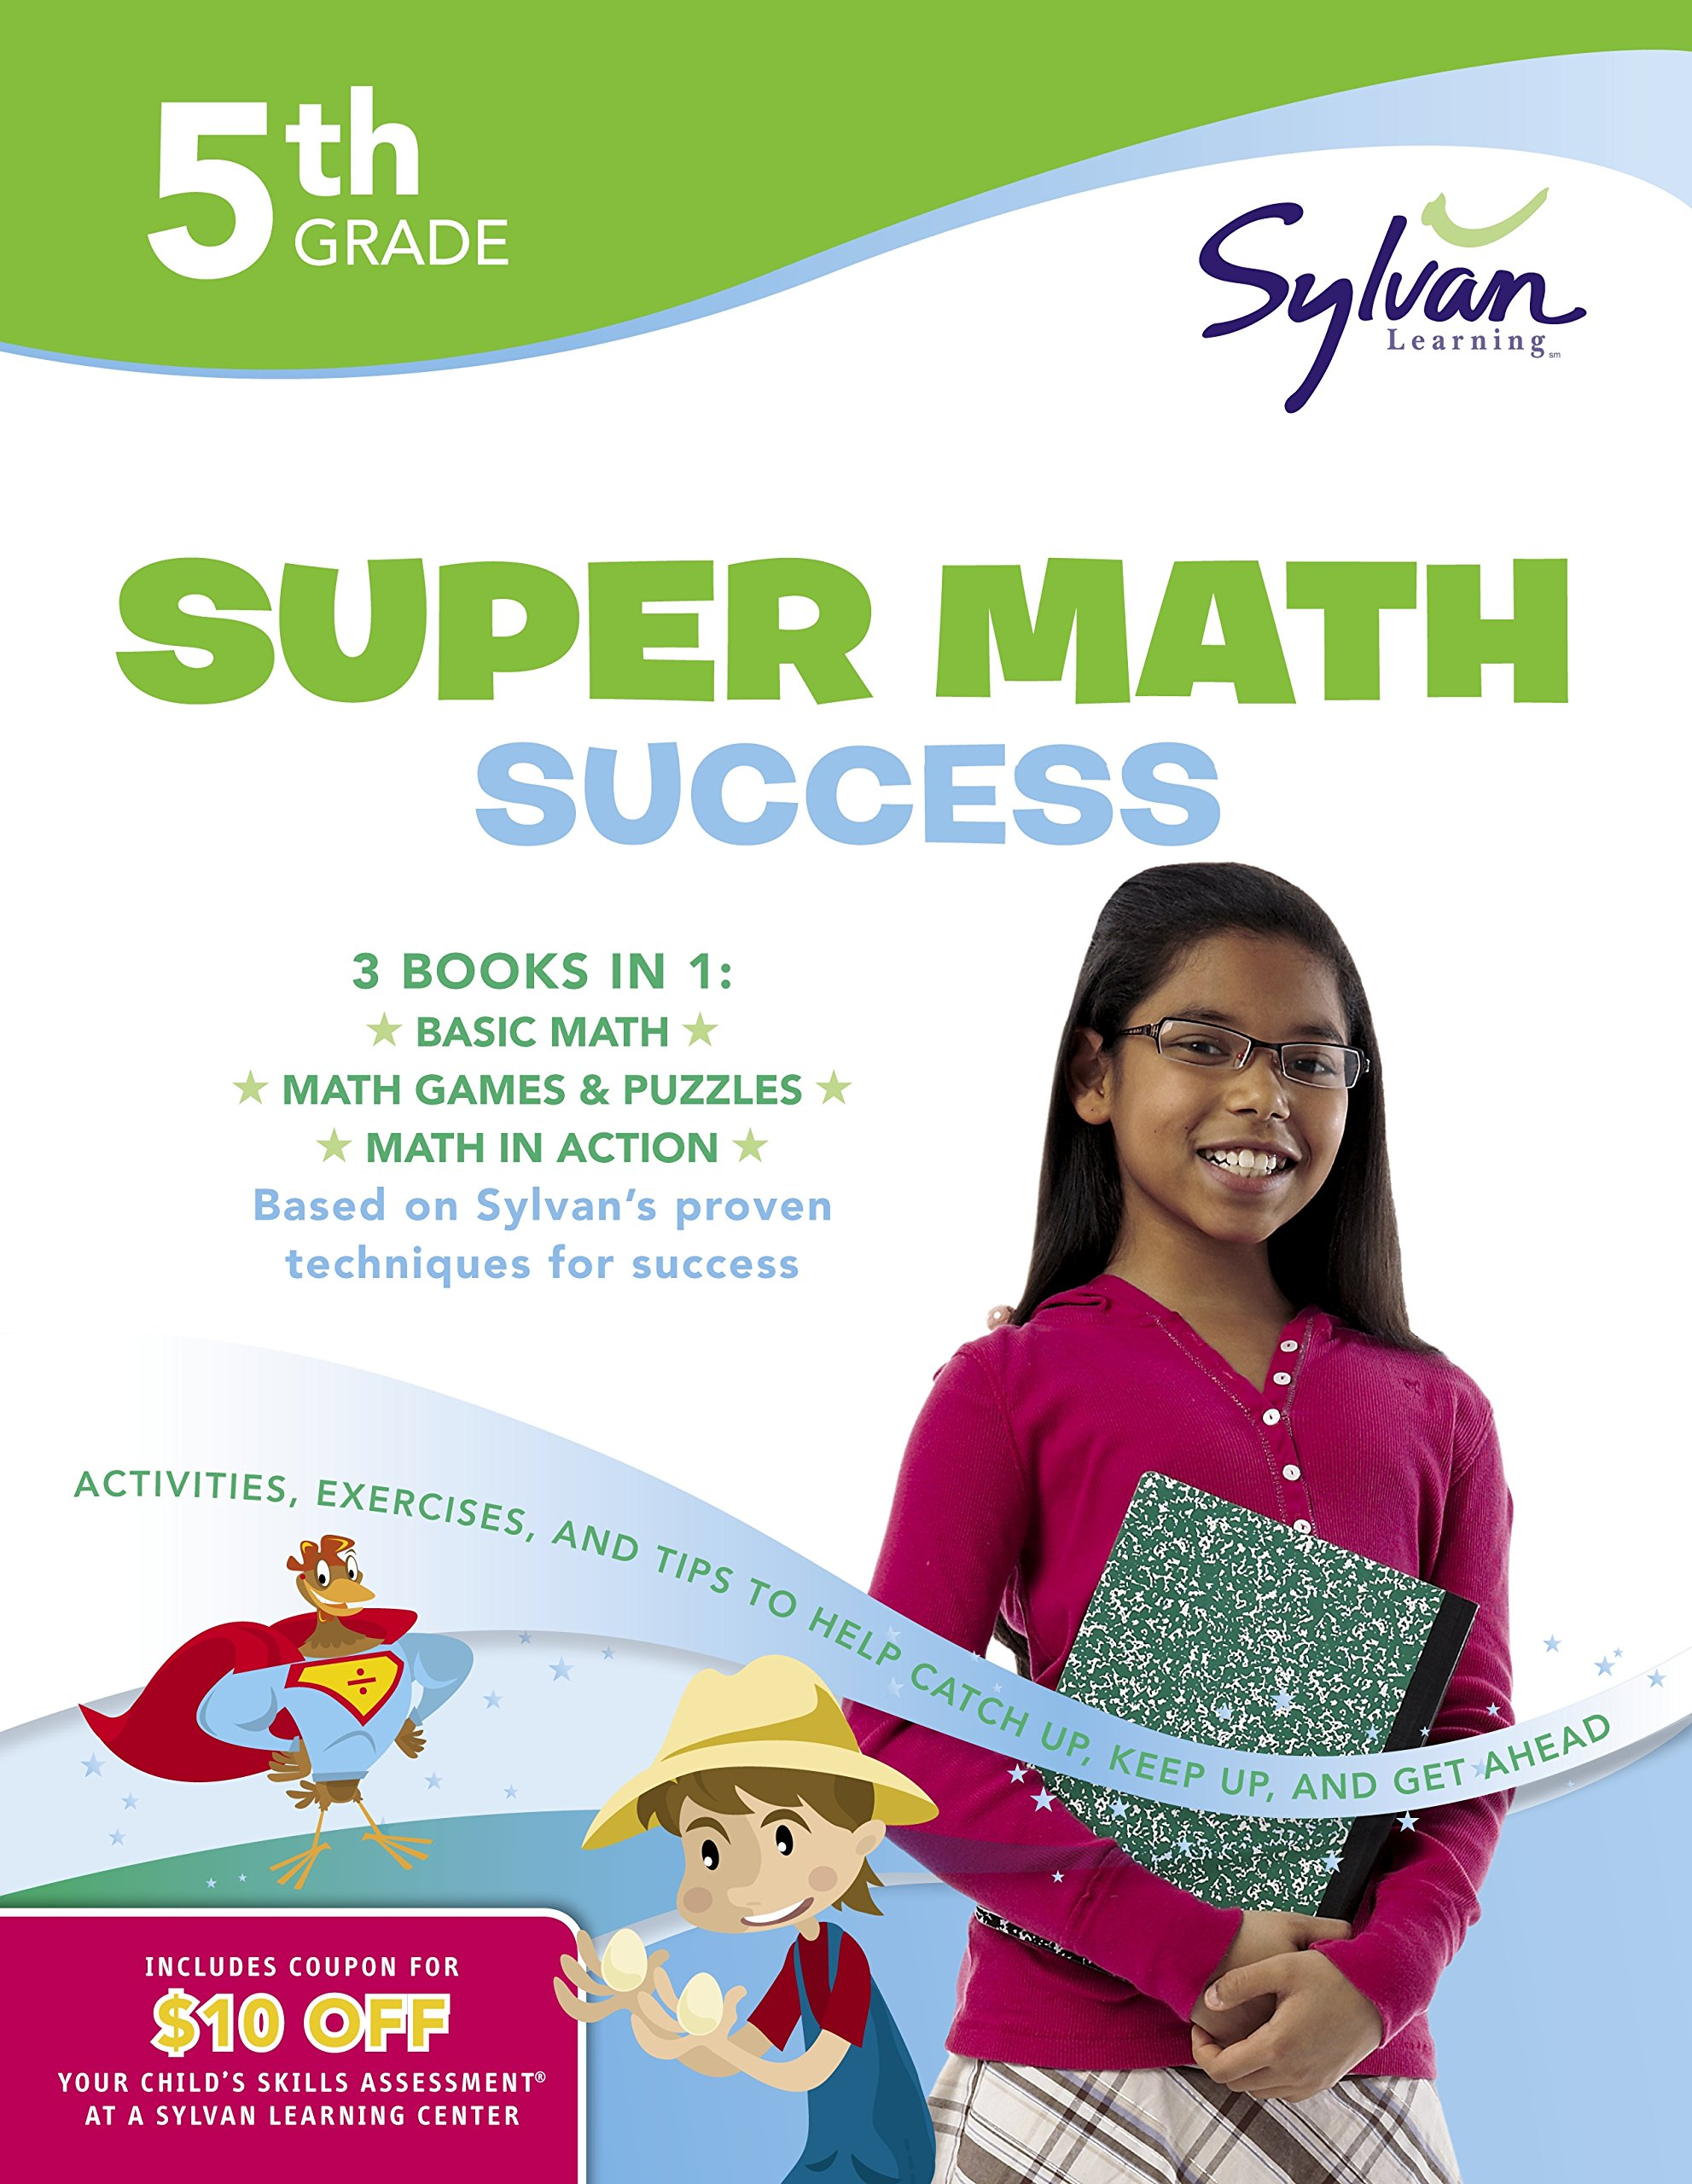 Worksheet 5th Grade Math Workbooks 5th grade super math success activities exercises and tips to help catch up keep get ahead sylvan workbook